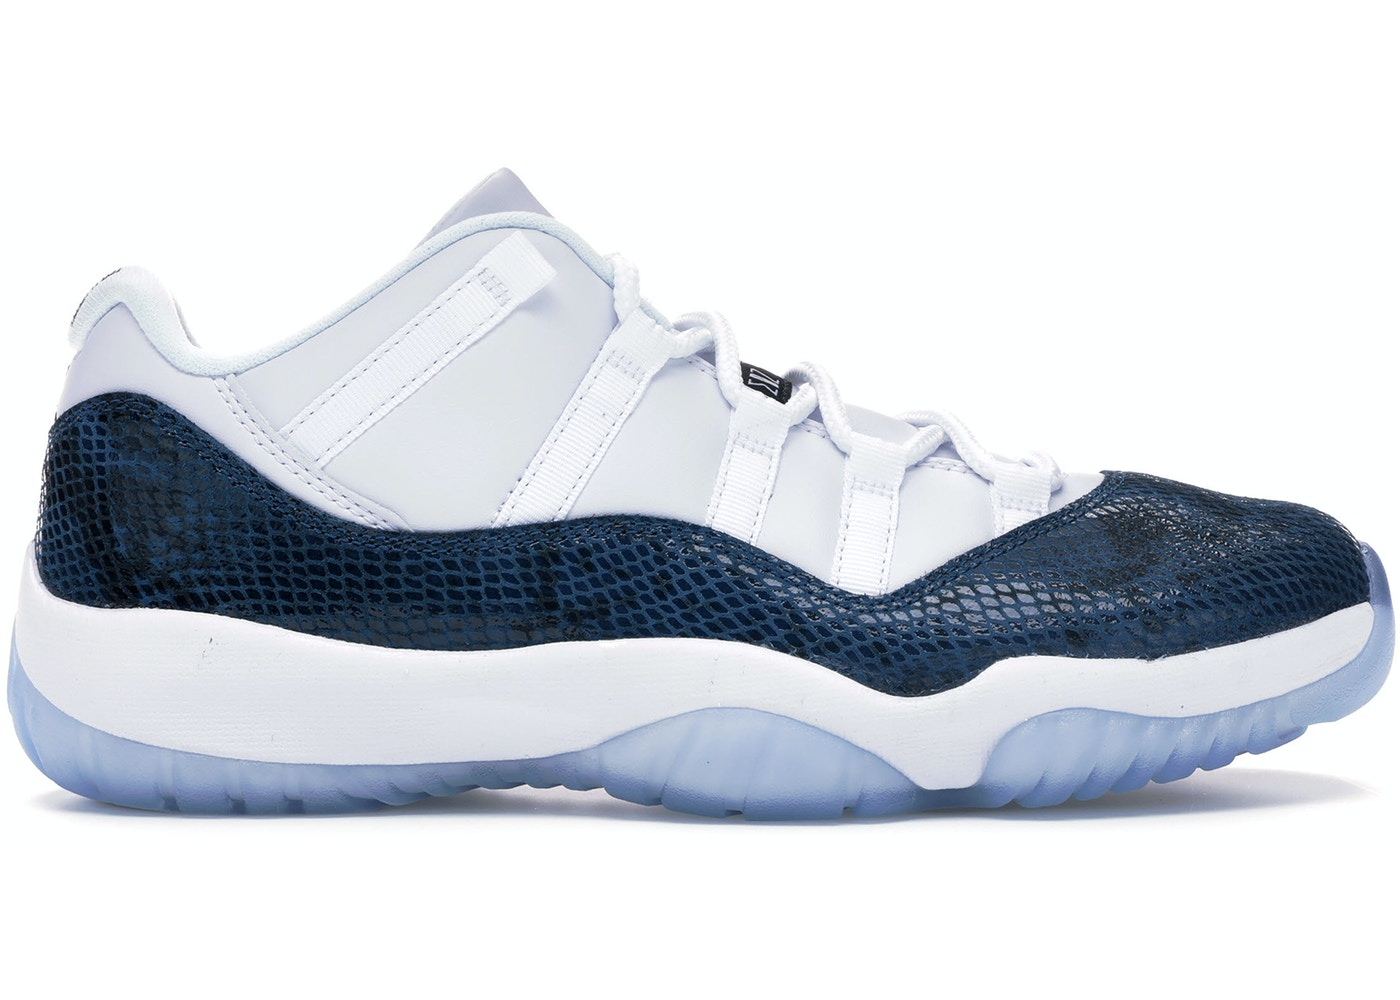 ca653c4b3305c9 Buy Air Jordan 11 Shoes   Deadstock Sneakers